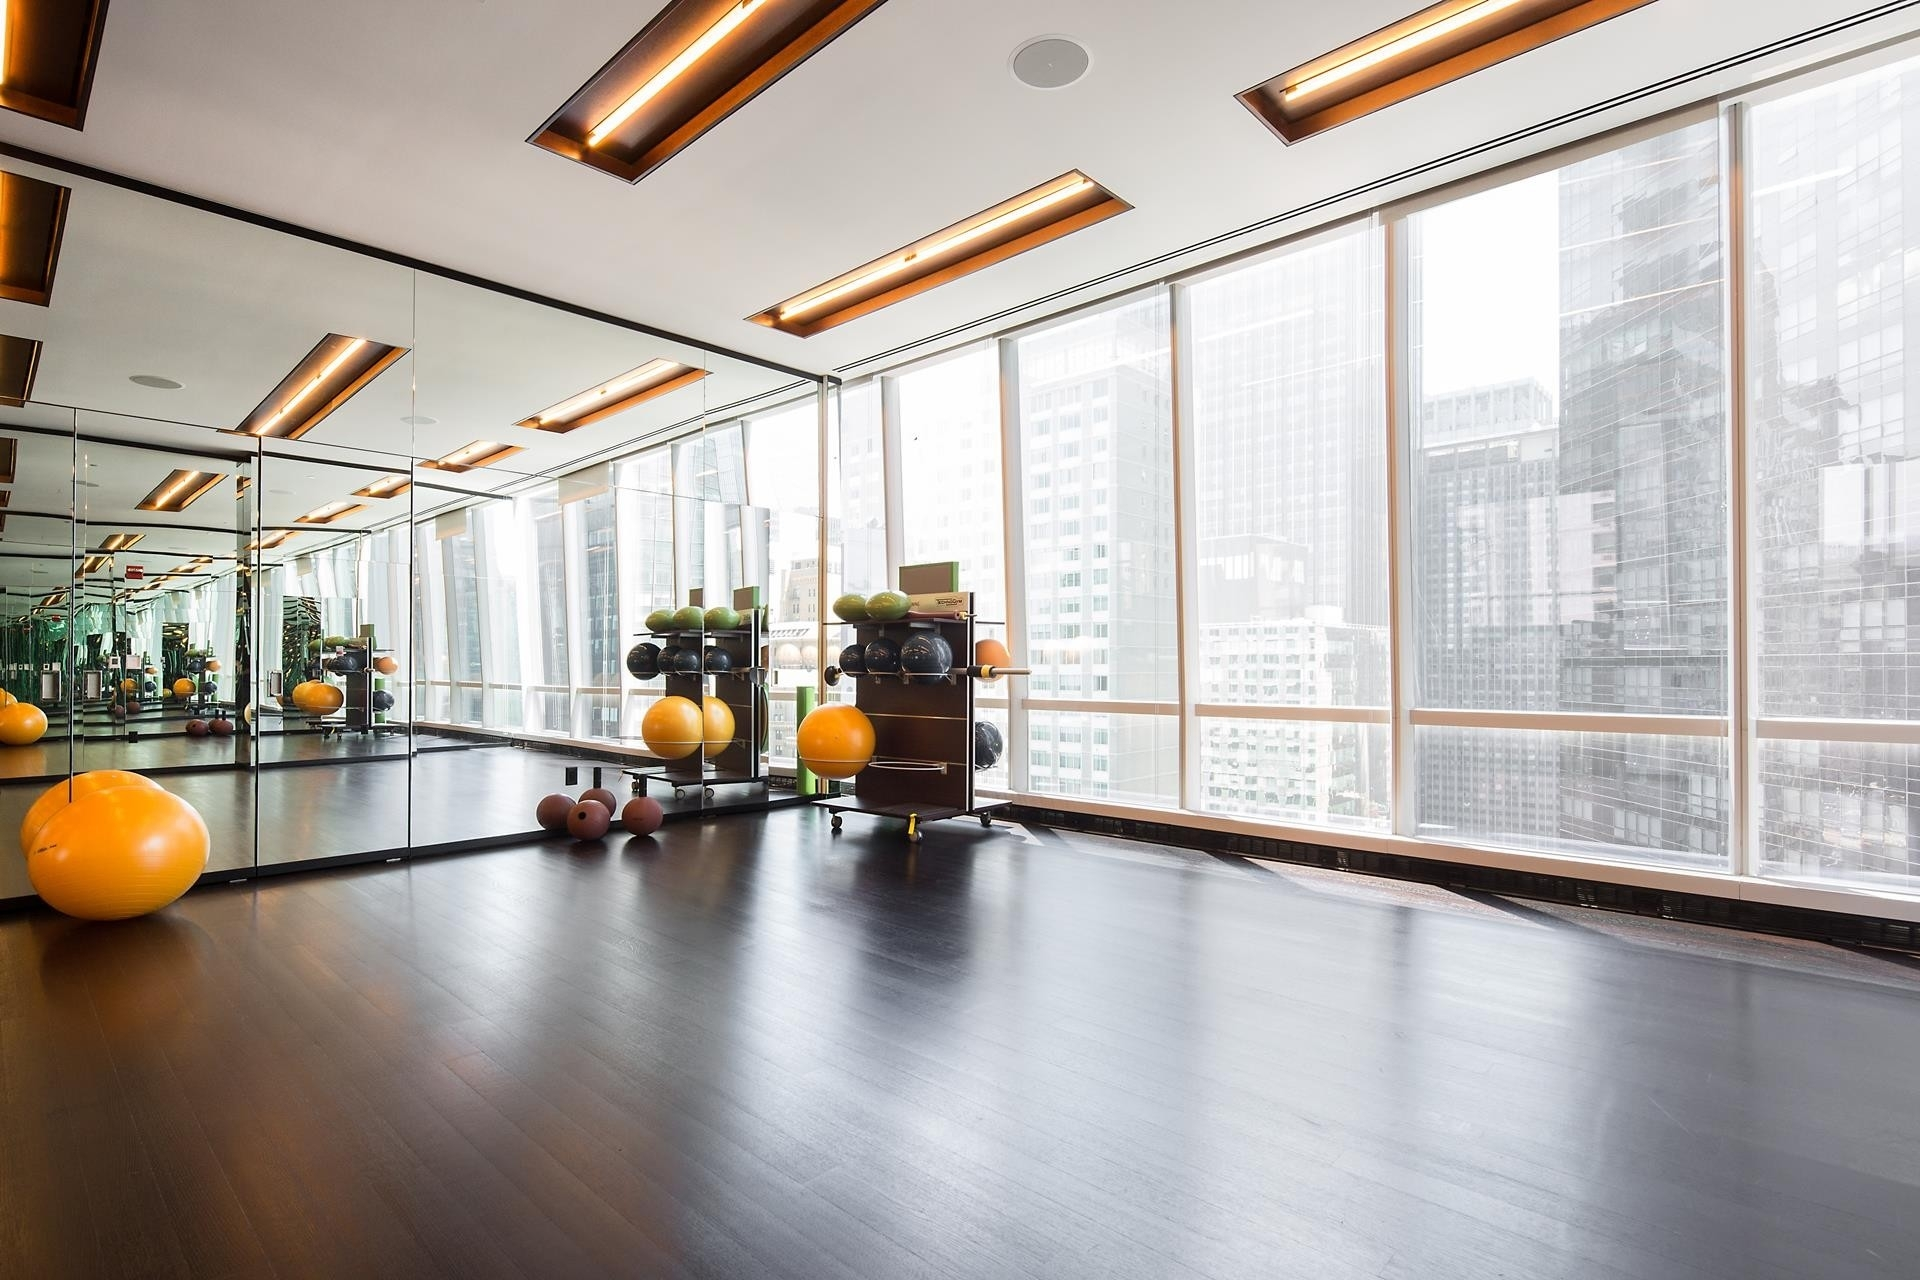 12. Condominiums for Sale at One57, 157 West 57th St, 41A Midtown West, New York, NY 10019